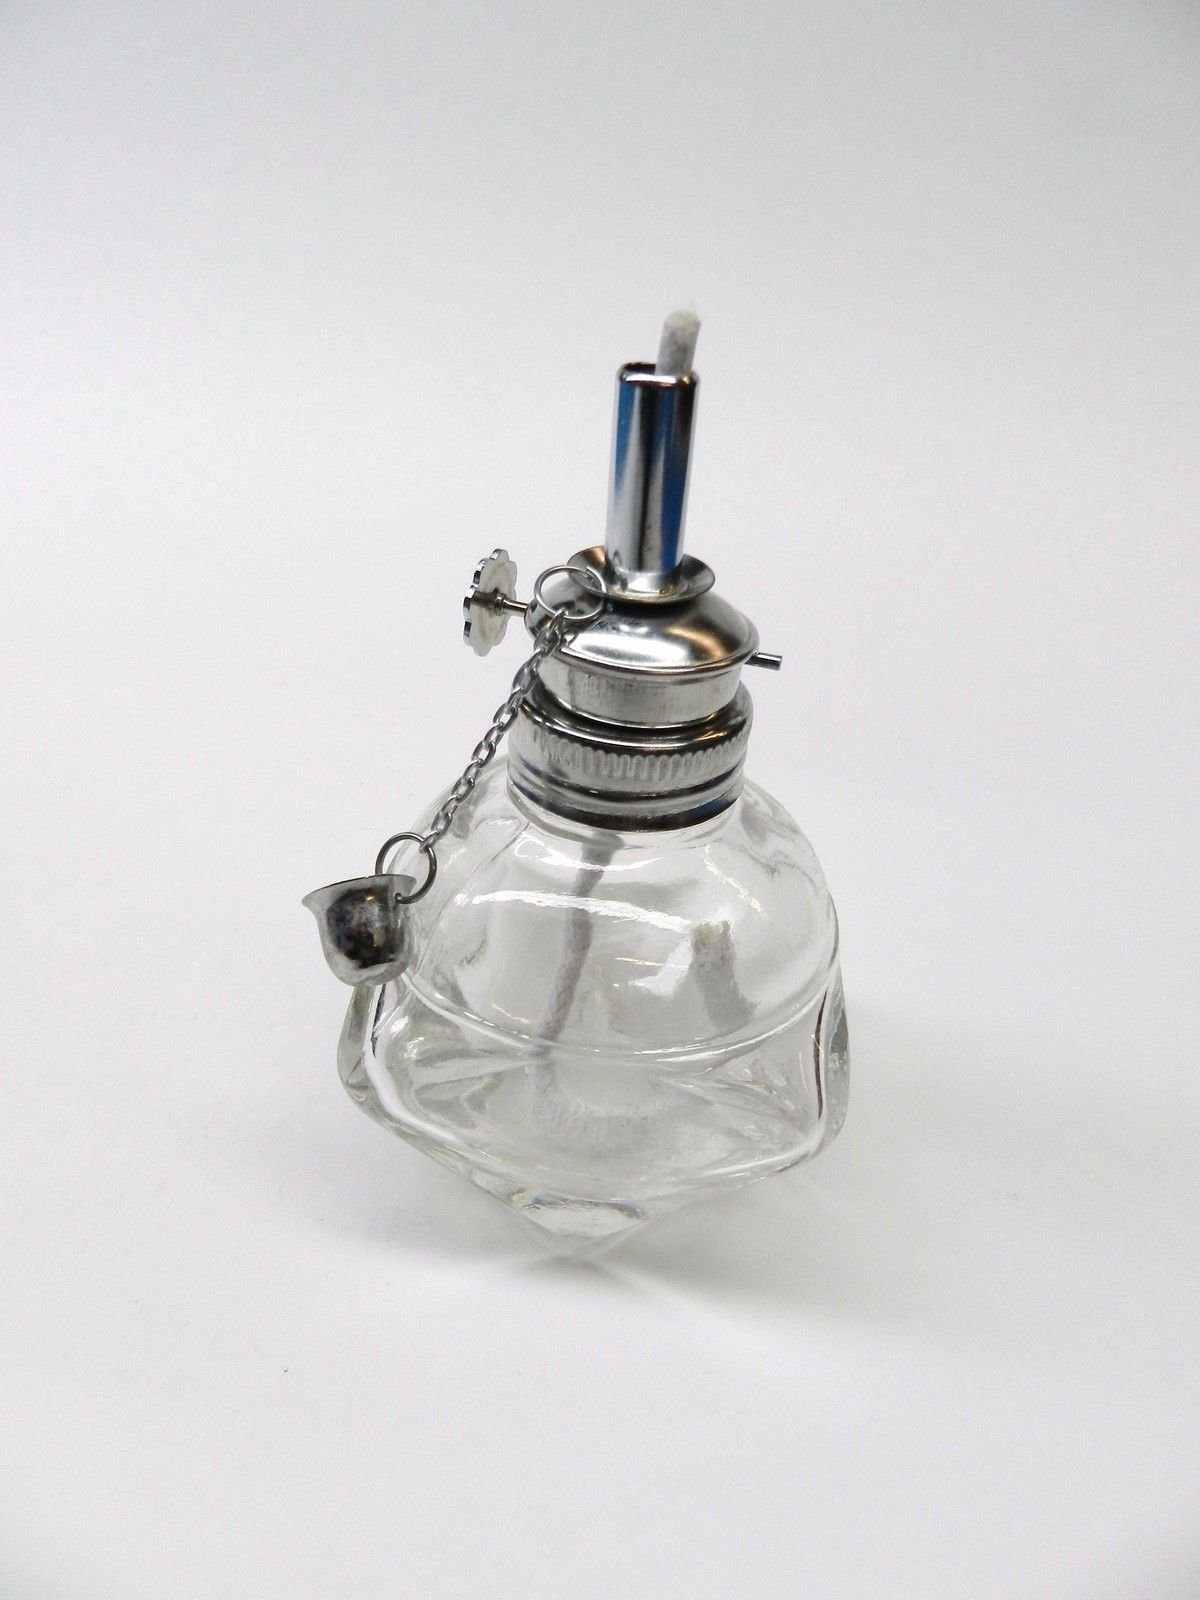 Alcohol Lamp Glass Spirit Lamp Burner Faceted Sides & Adjustable Wick Wax Work by EUROTOOL (Image #8)